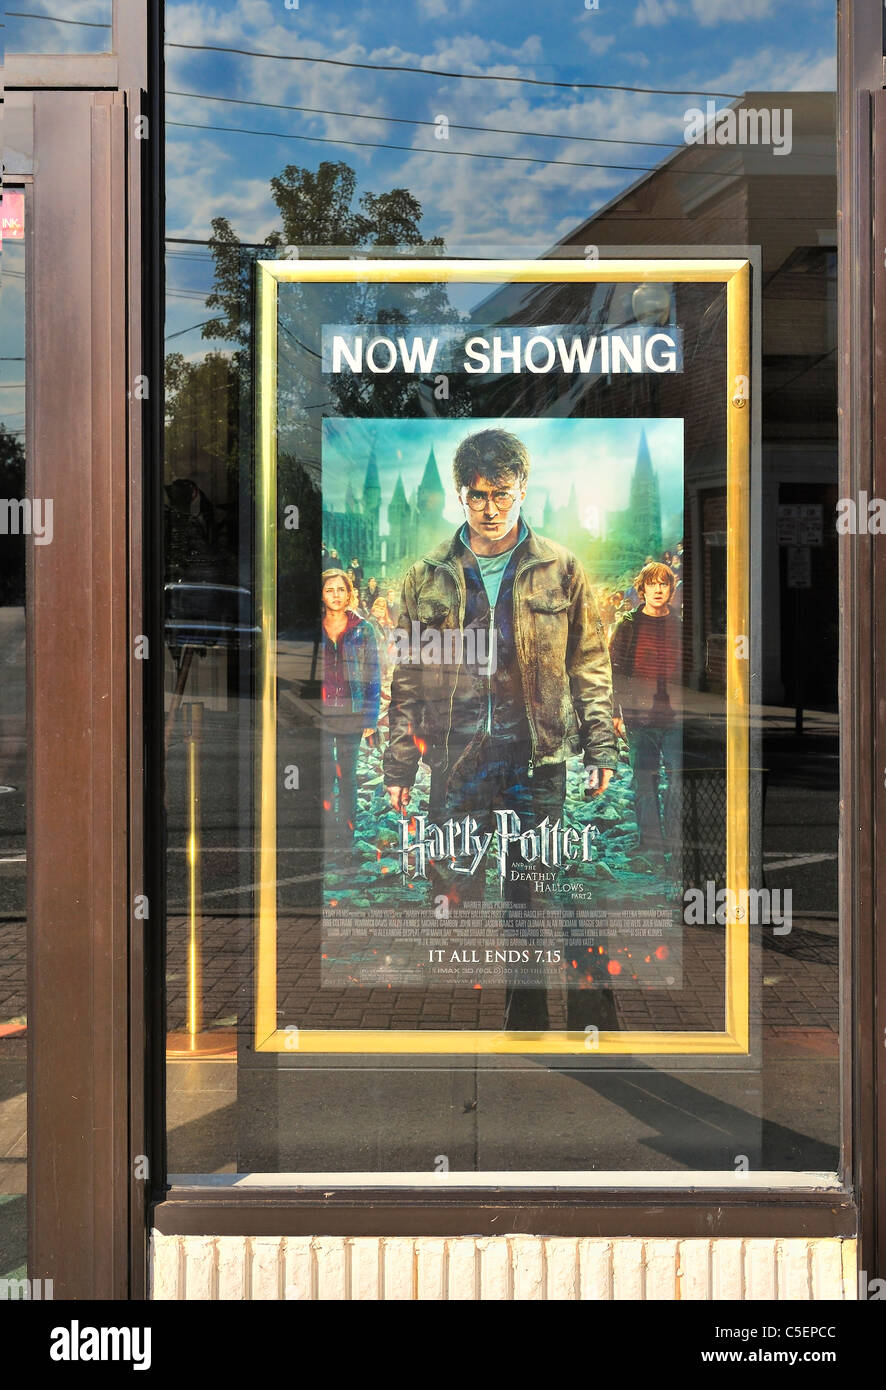 quotharry potter and the deathly hallows part 2quot movie poster